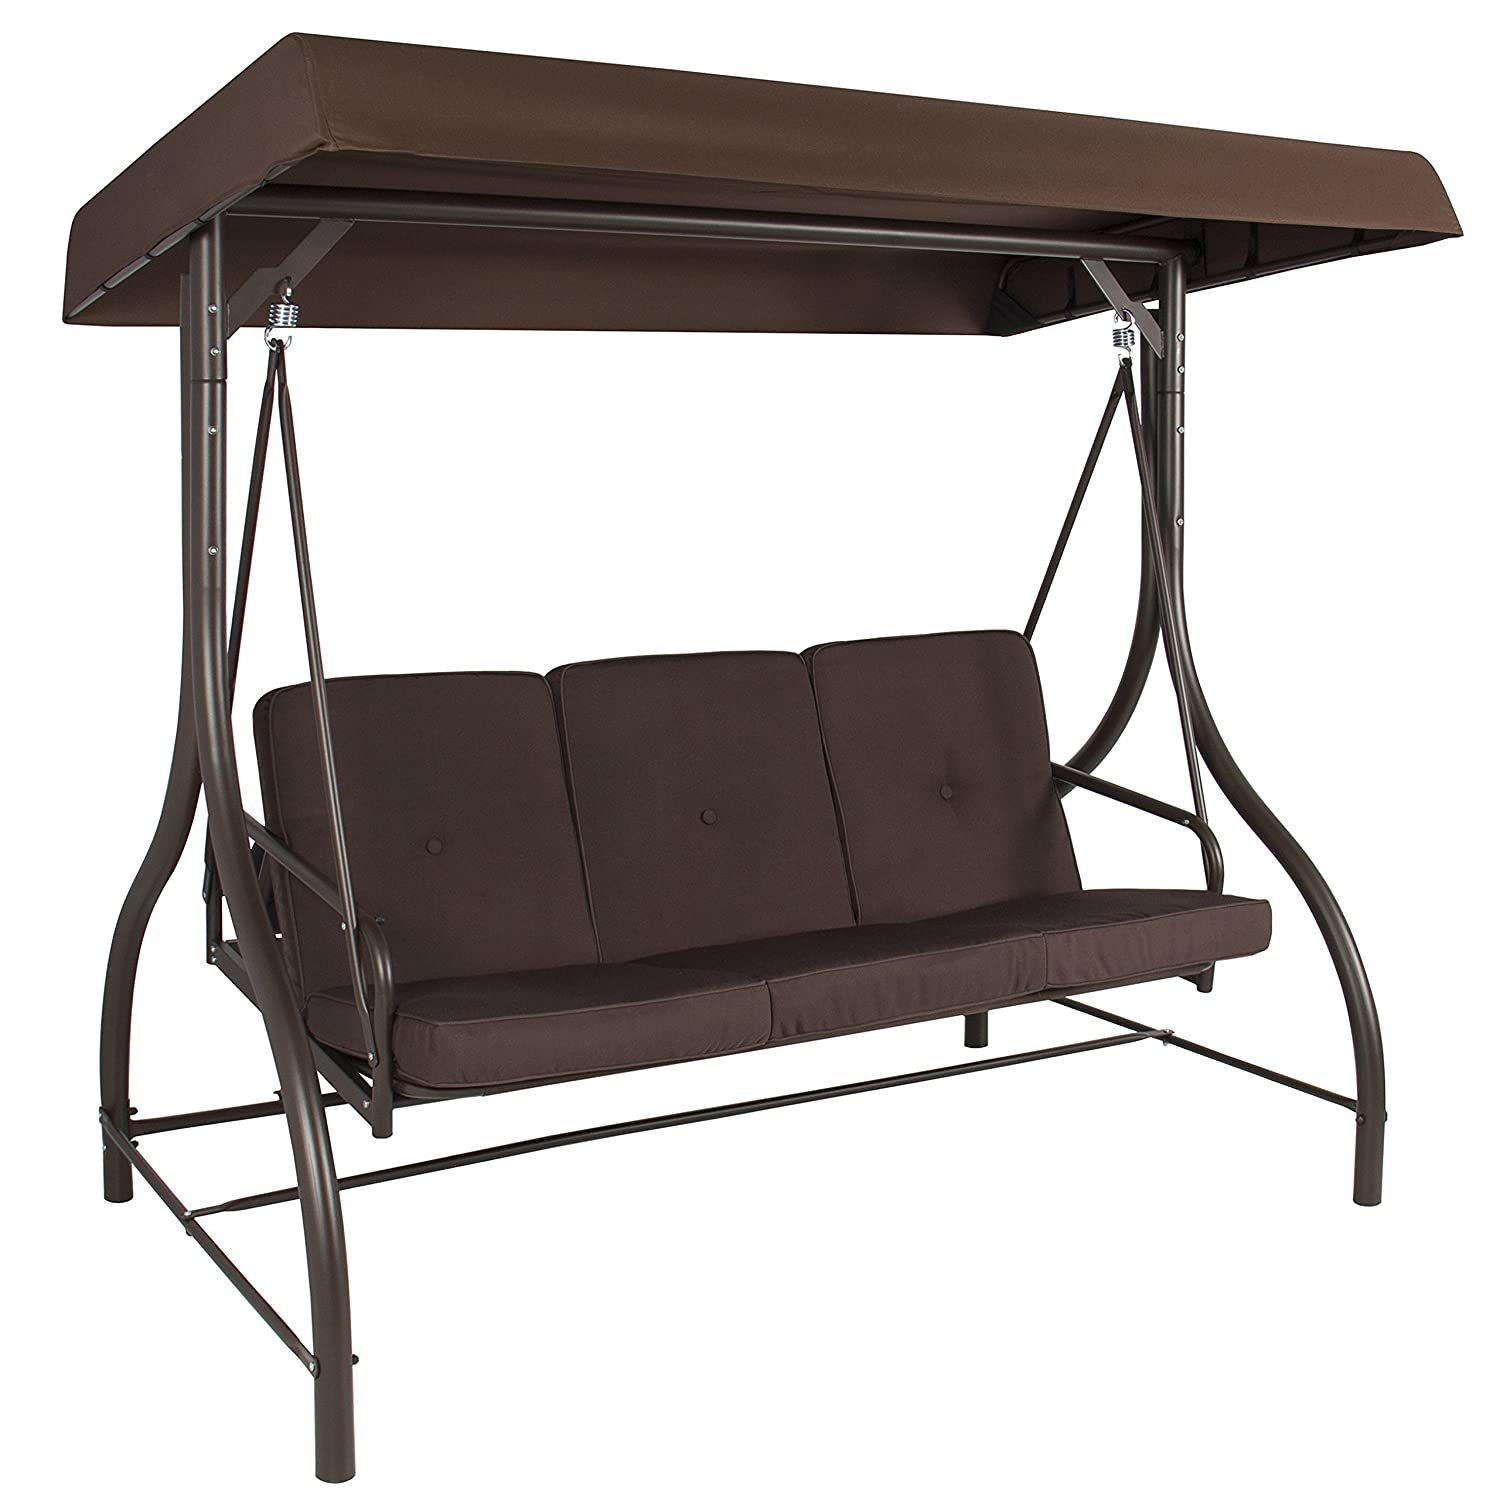 Amazon.com  Best Choice Products Converting Outdoor Swing Canopy Hammock Seats 3 Patio Deck Furniture Brown  Garden u0026 Outdoor  sc 1 st  Amazon.com : outdoor glider swing with canopy - memphite.com